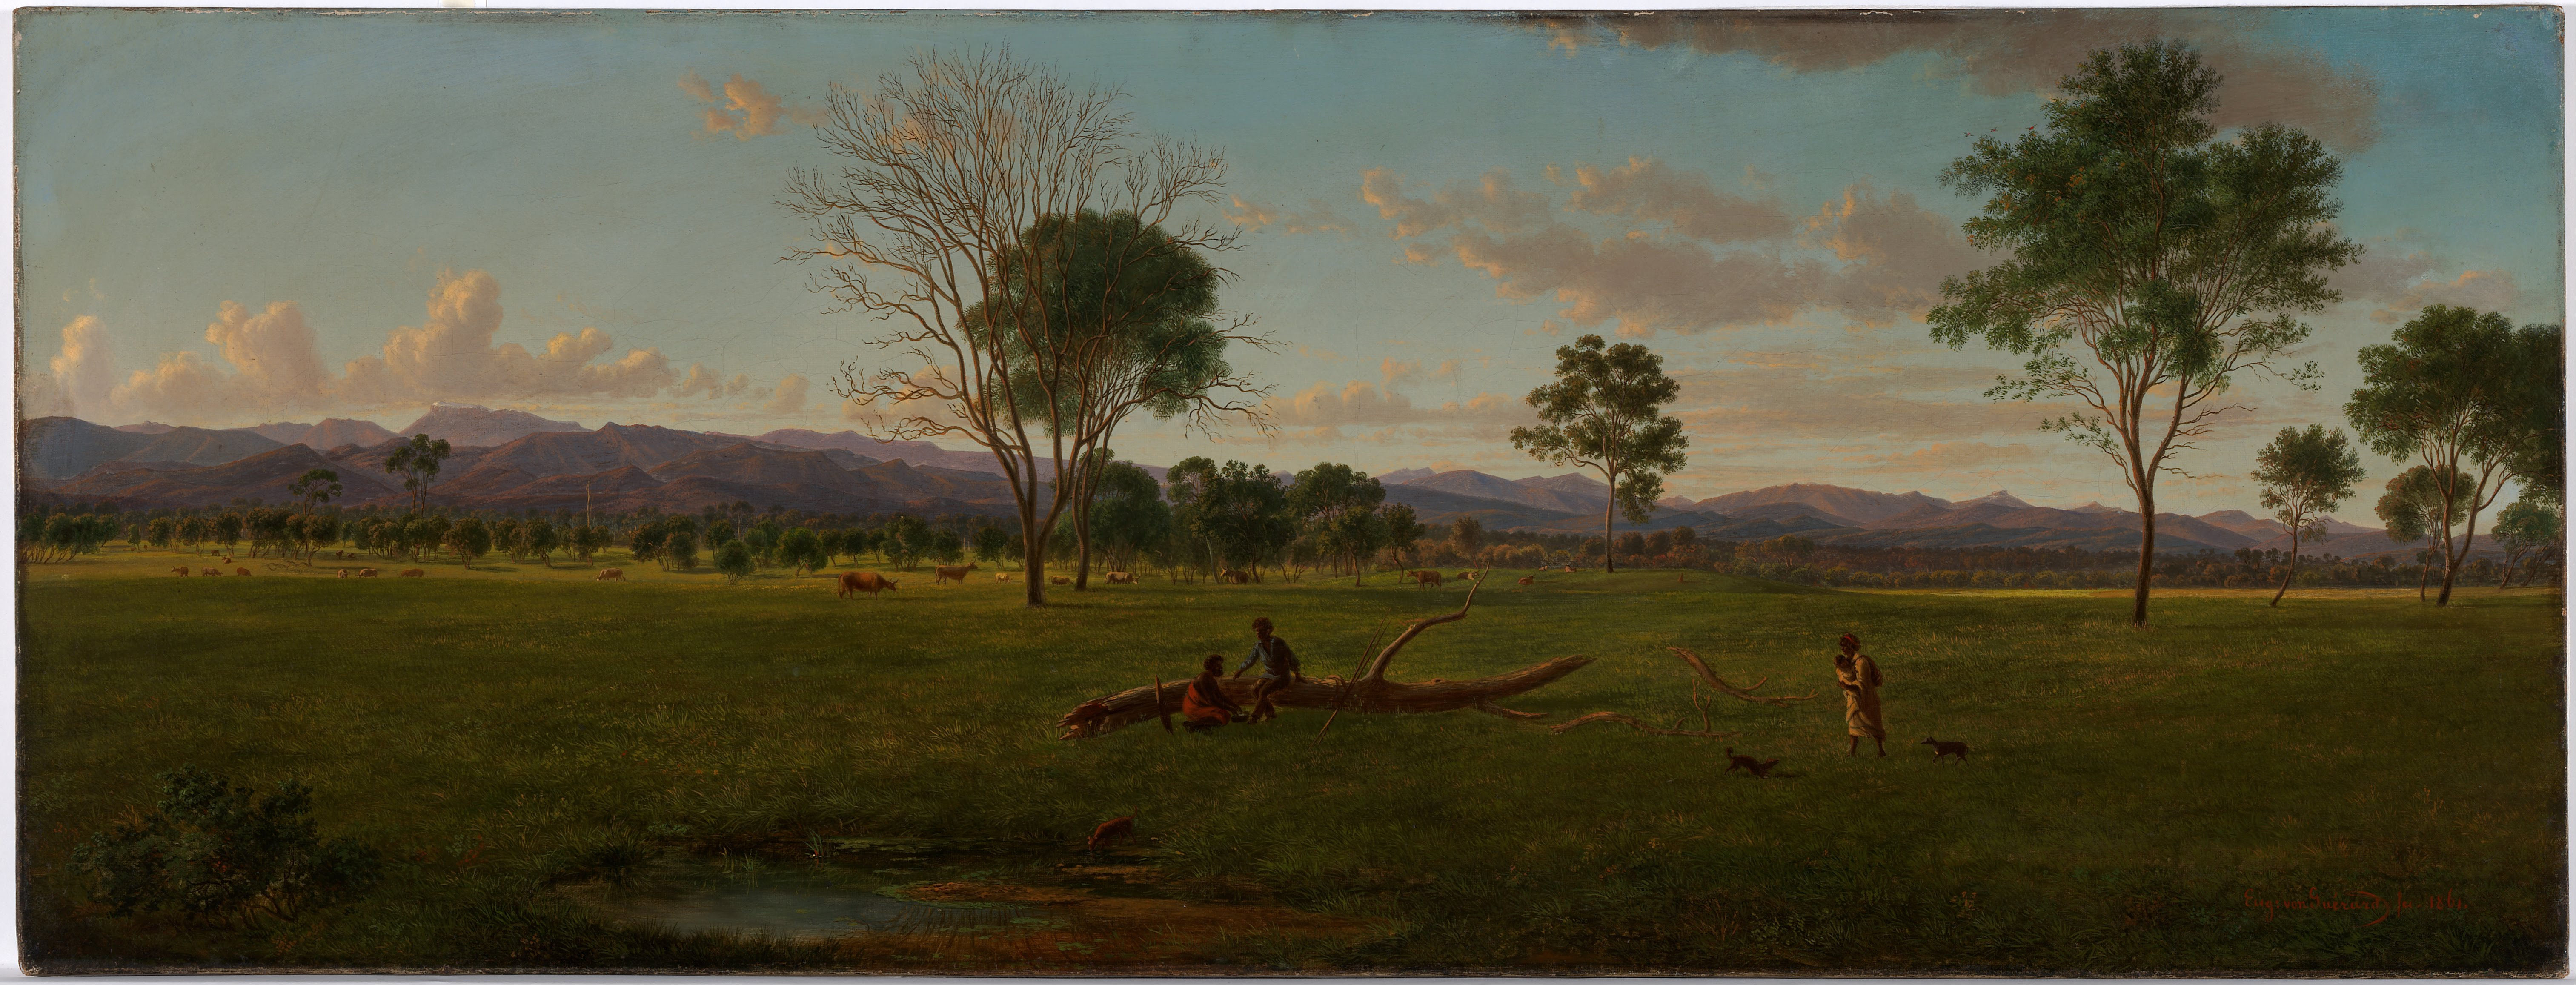 File Eugene Von Guerard View Of The Gippsland Alps From Bushy Park On The River Avon Google Art Project Jpg Wikimedia Commons